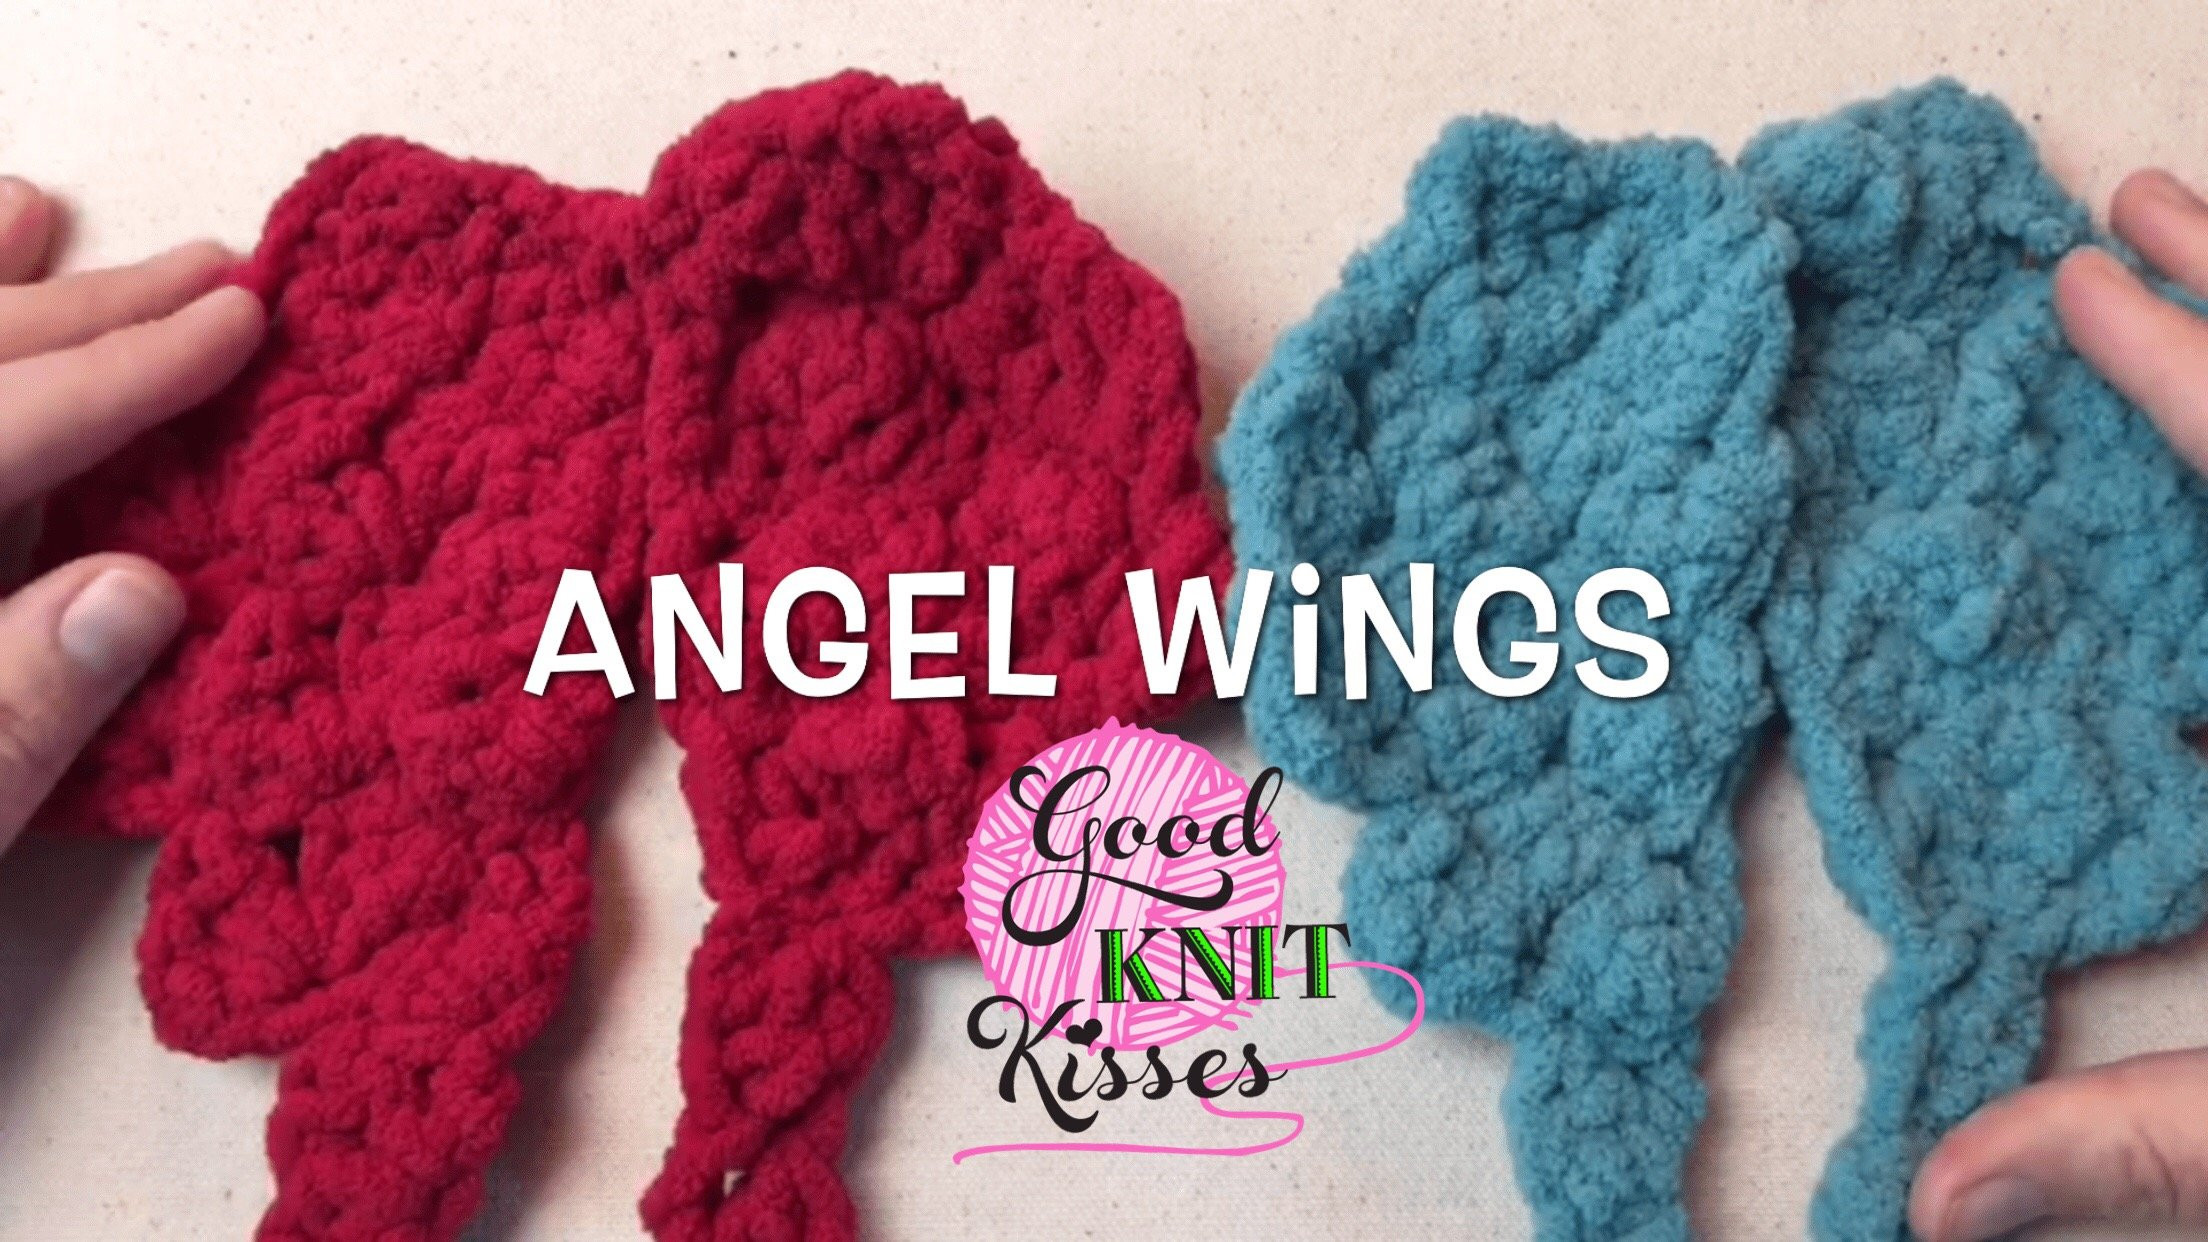 Angel Wings Crochet GoodKnit Kisses GoodKnit Kisses